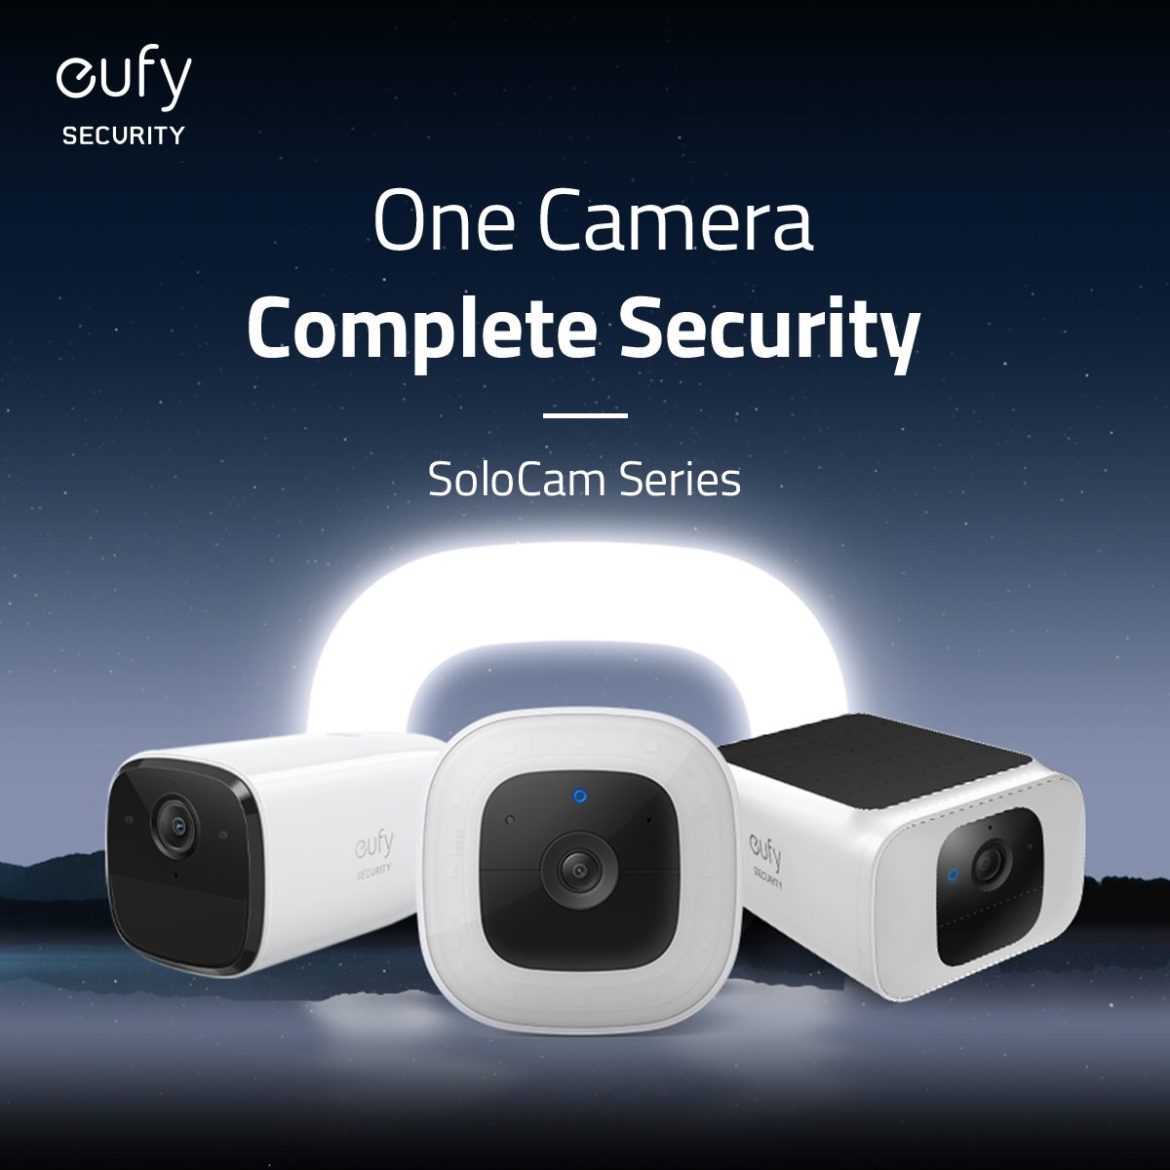 Did you see Eufy's new wireless cameras?